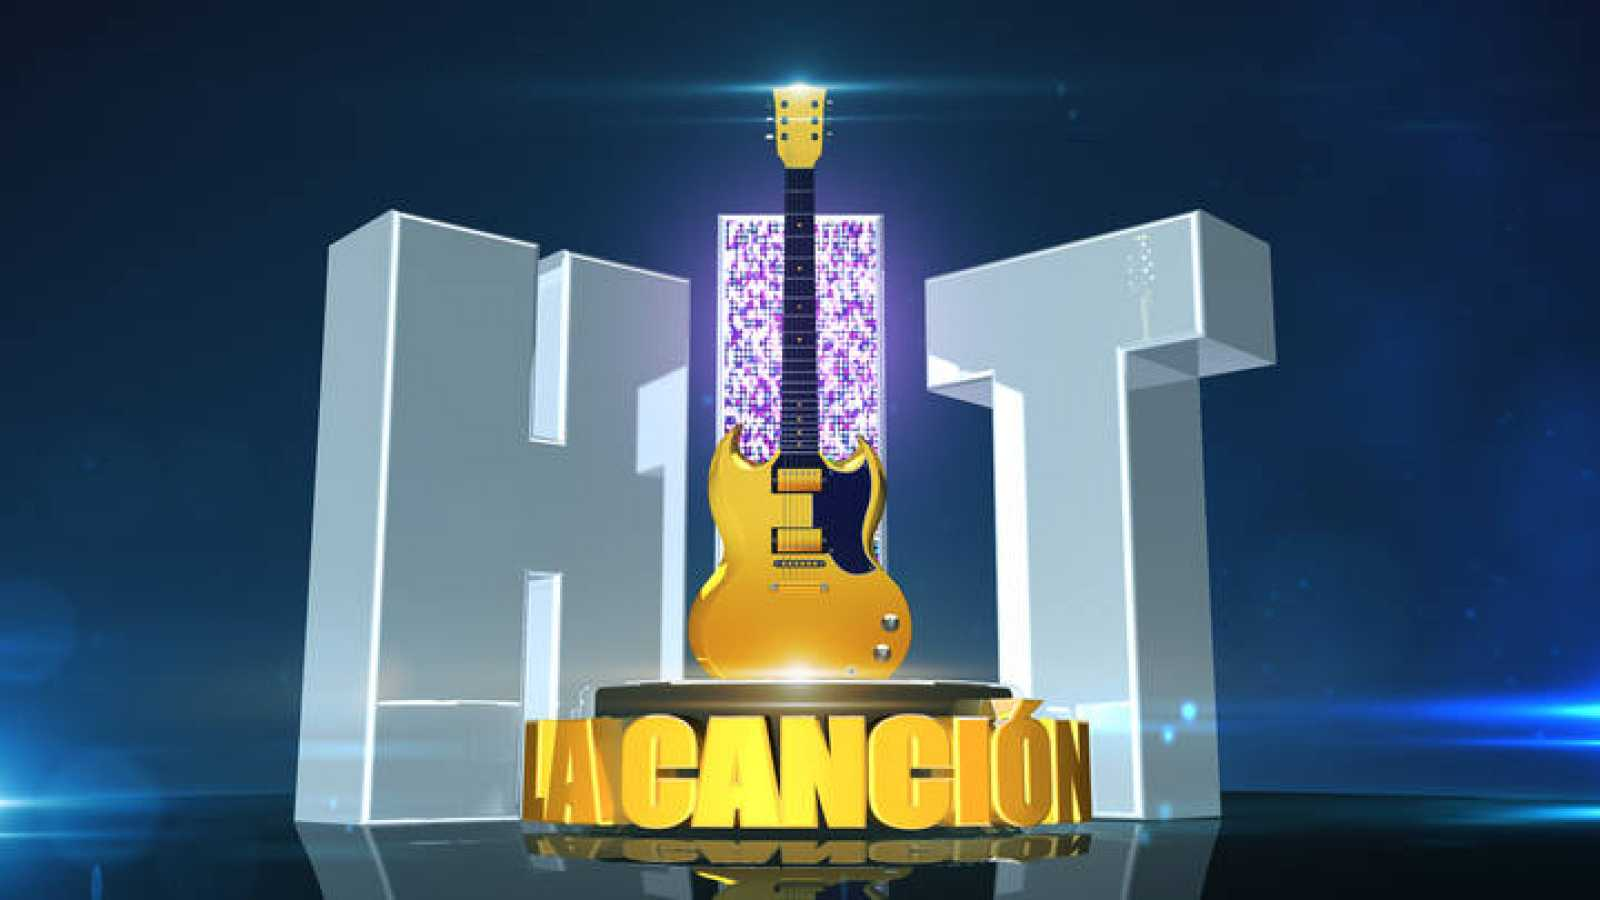 Logo de 'The Hit. La canción'